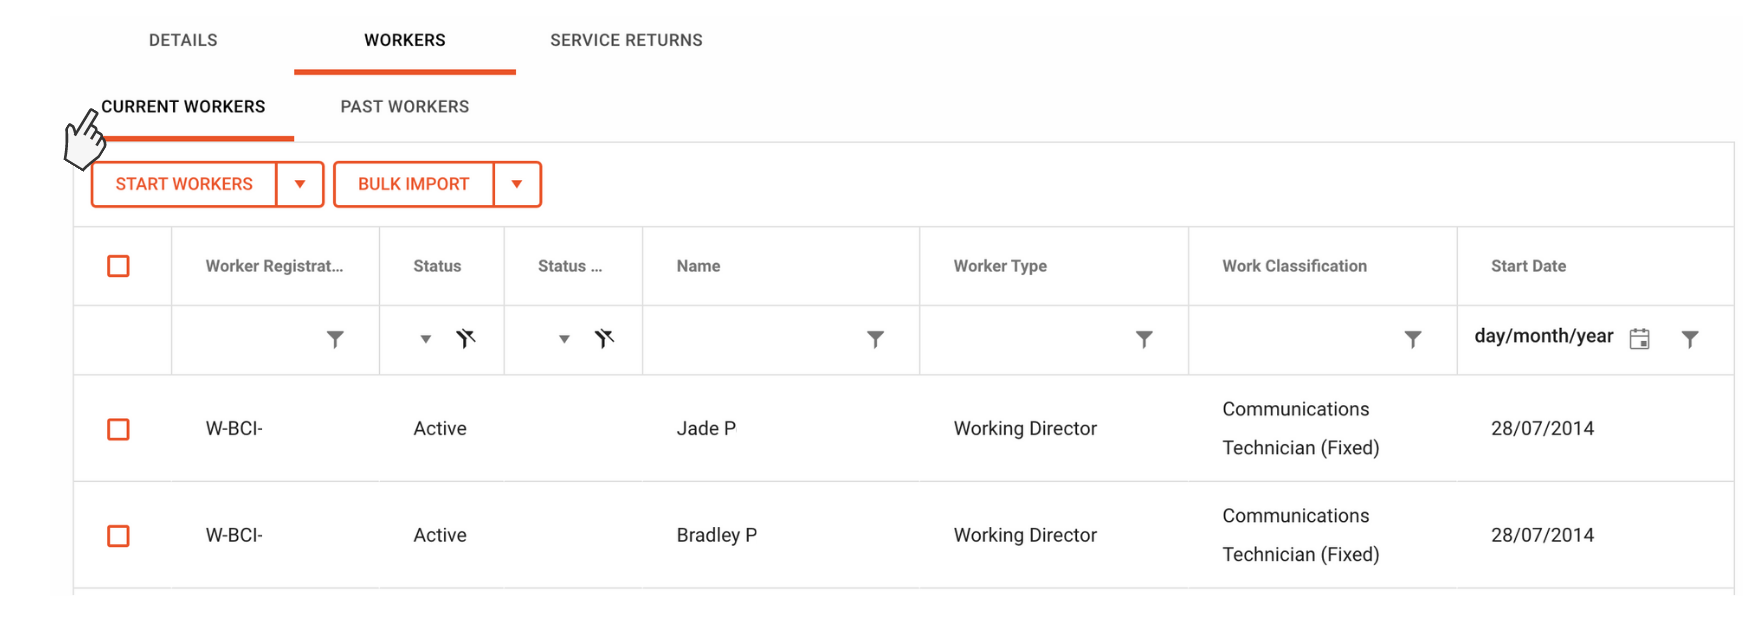 Image showing current workers table in QLeave online services